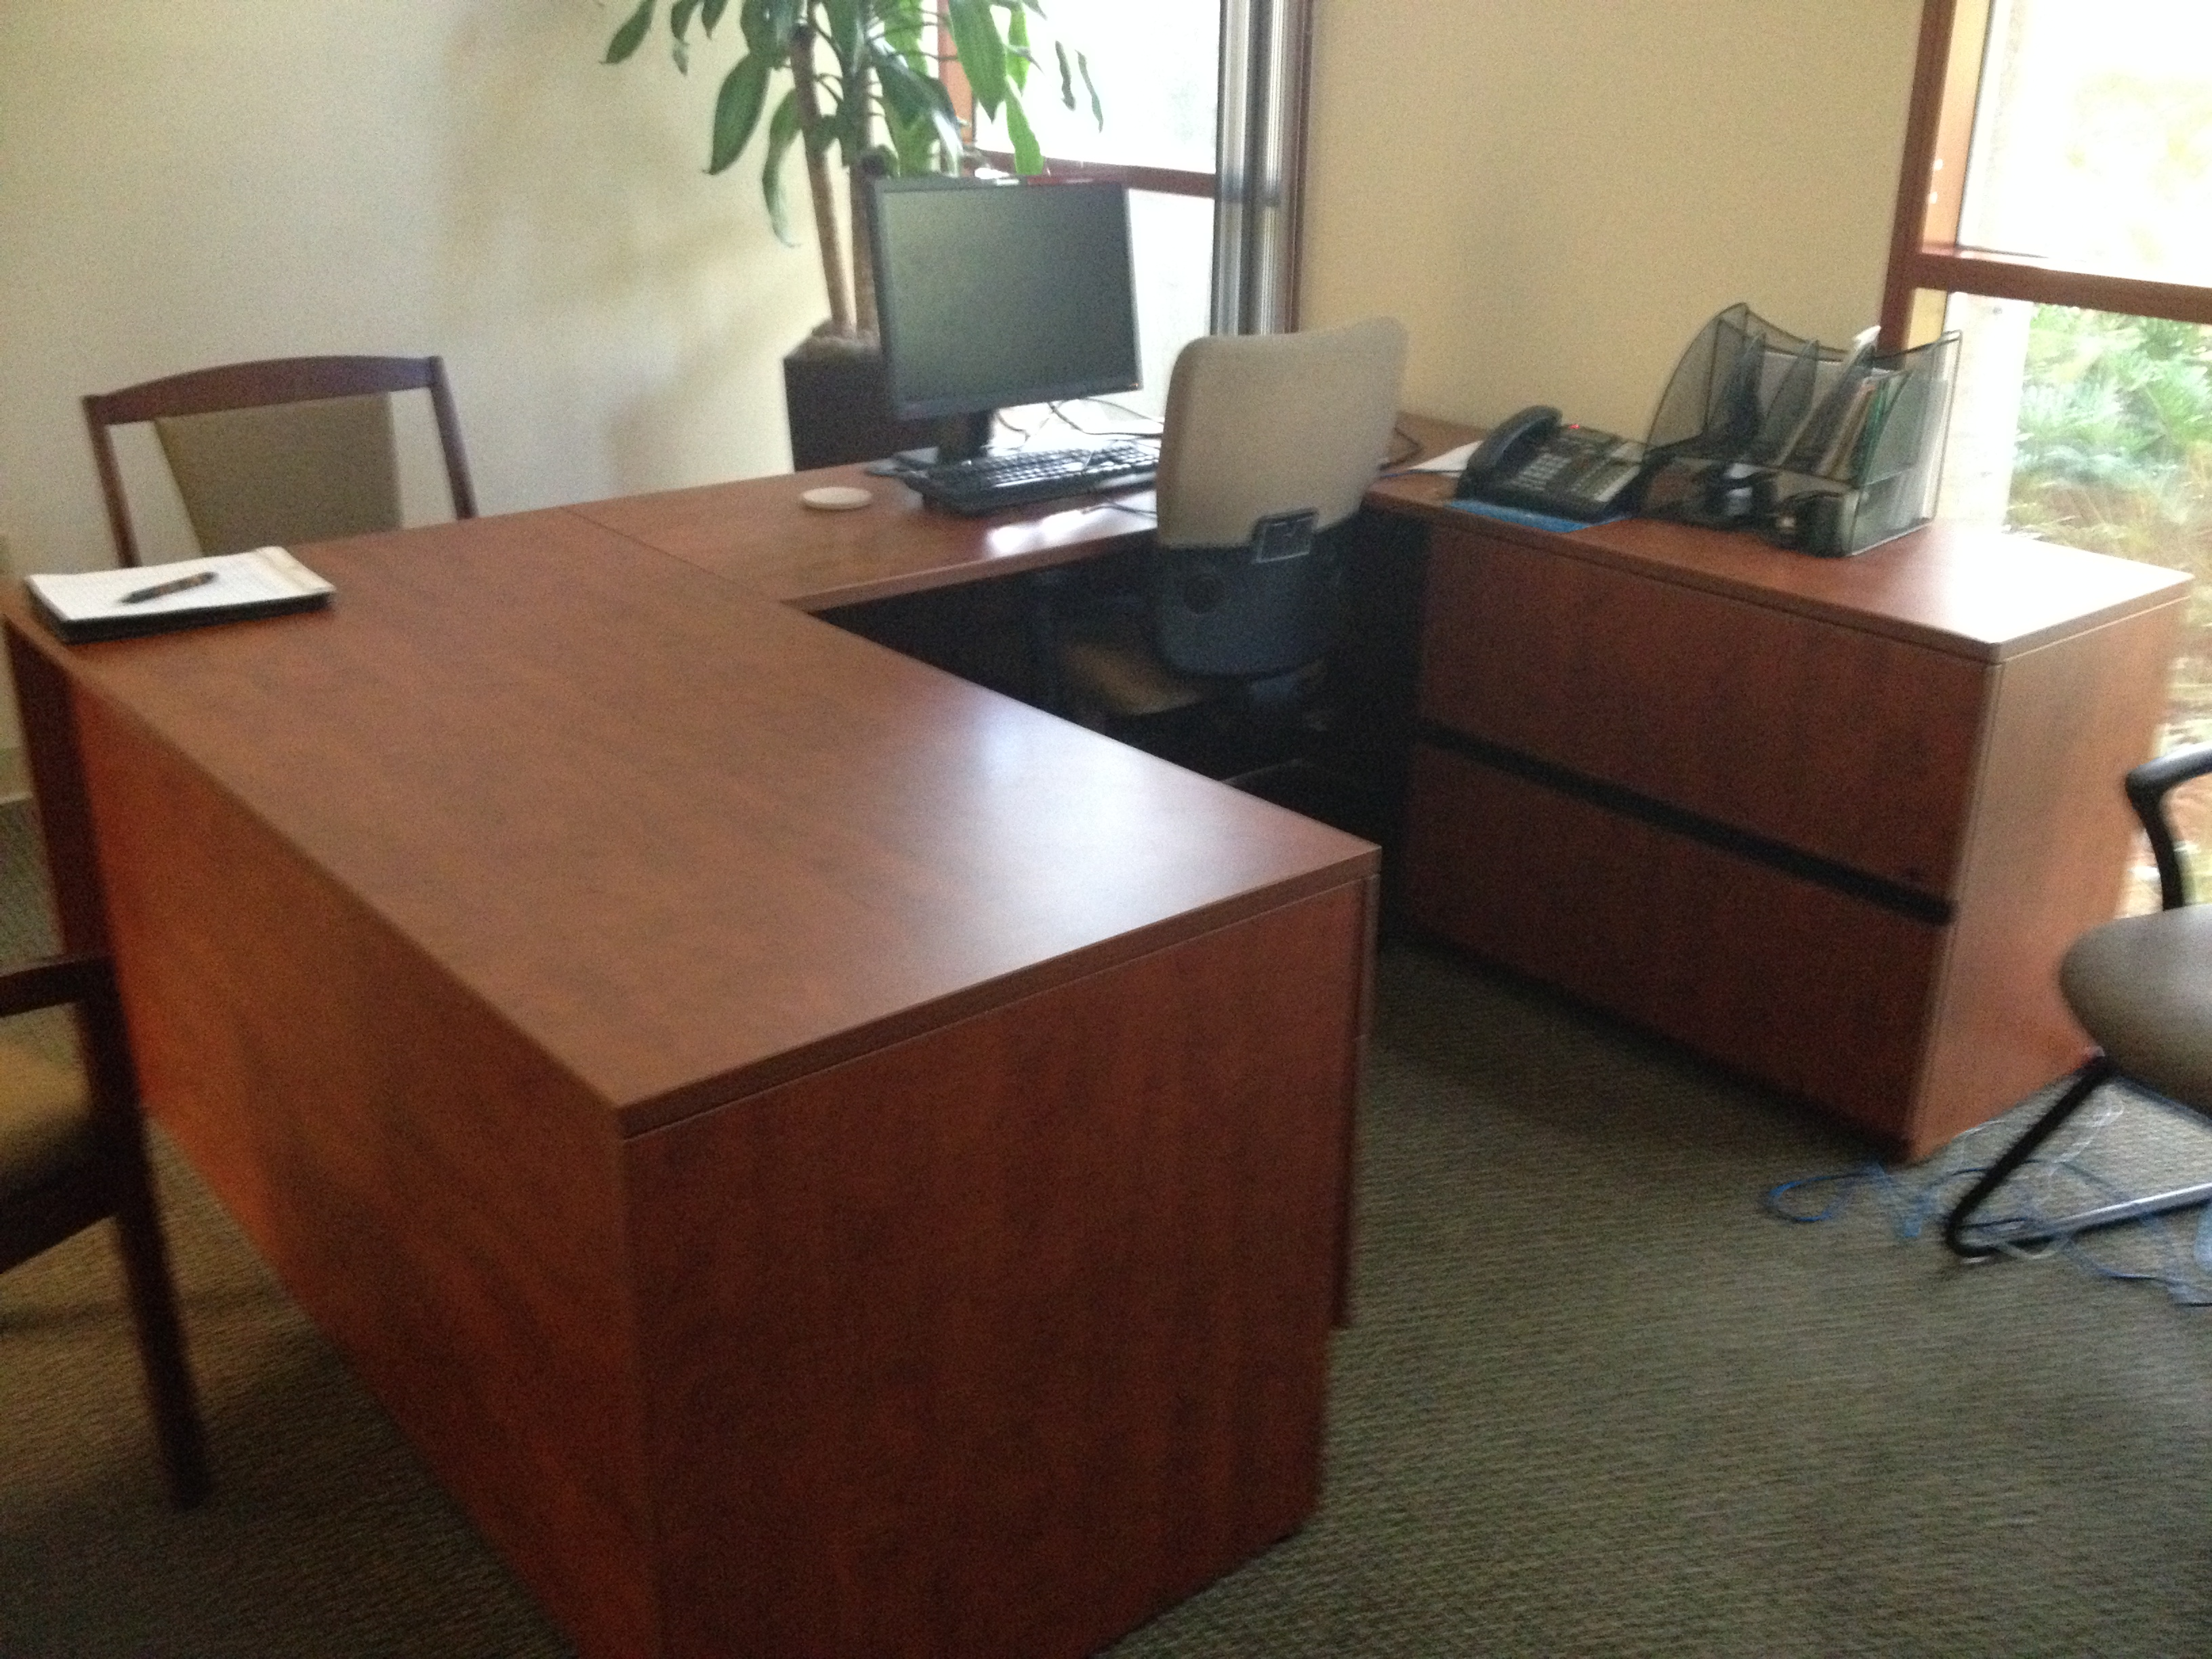 michigan h used furniture for desk p office purchasing sale installations